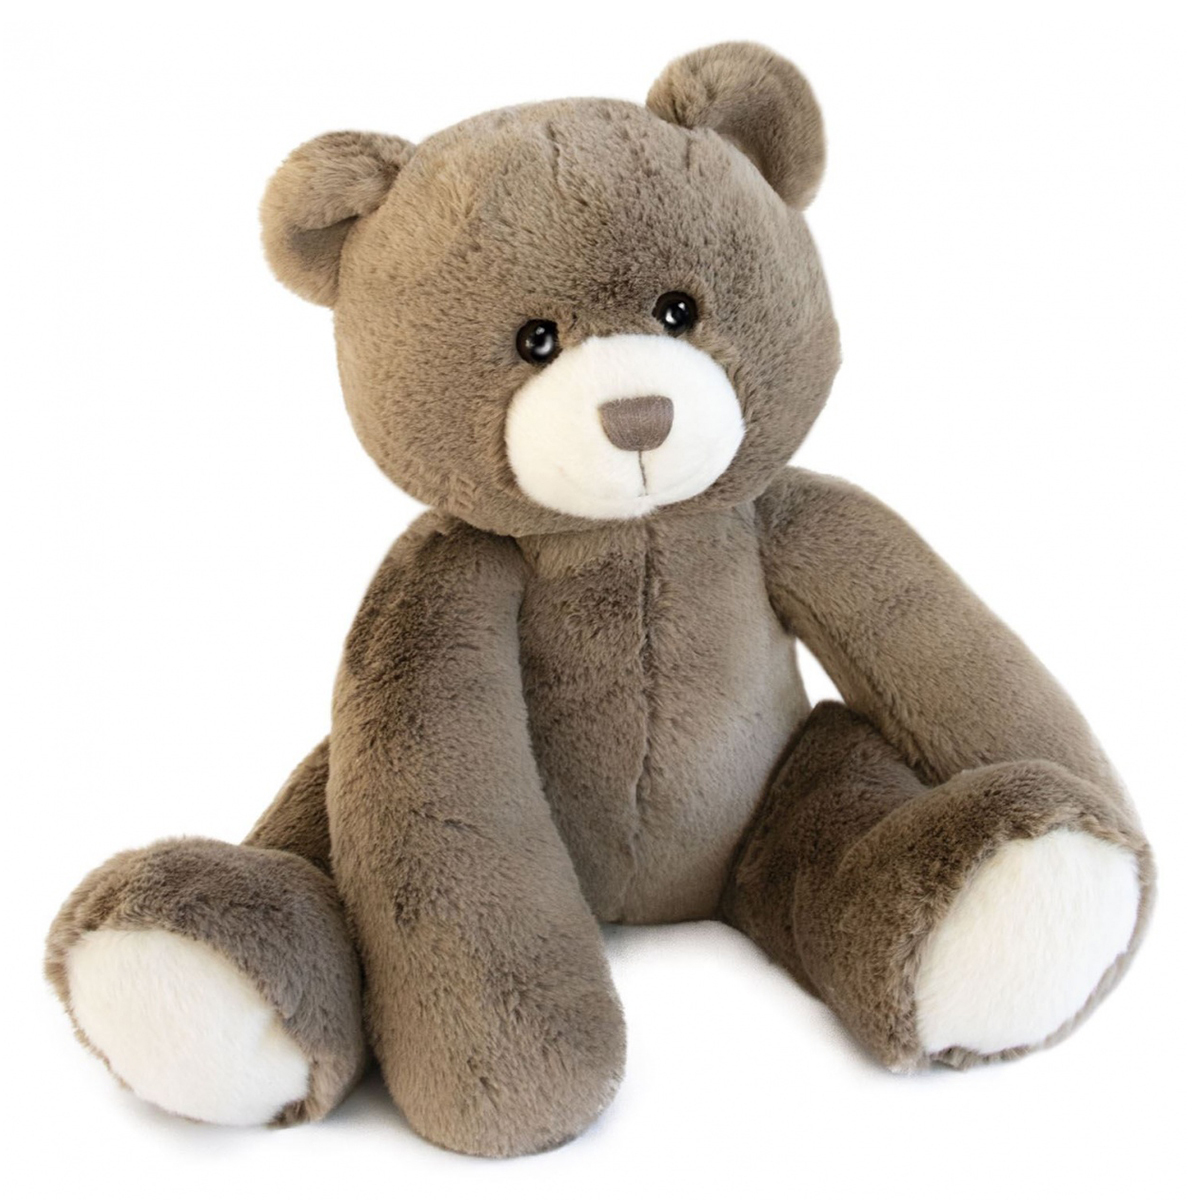 Peluche Oscar l'Ours Taupe - Les Ours Peluche Ours 35 cm